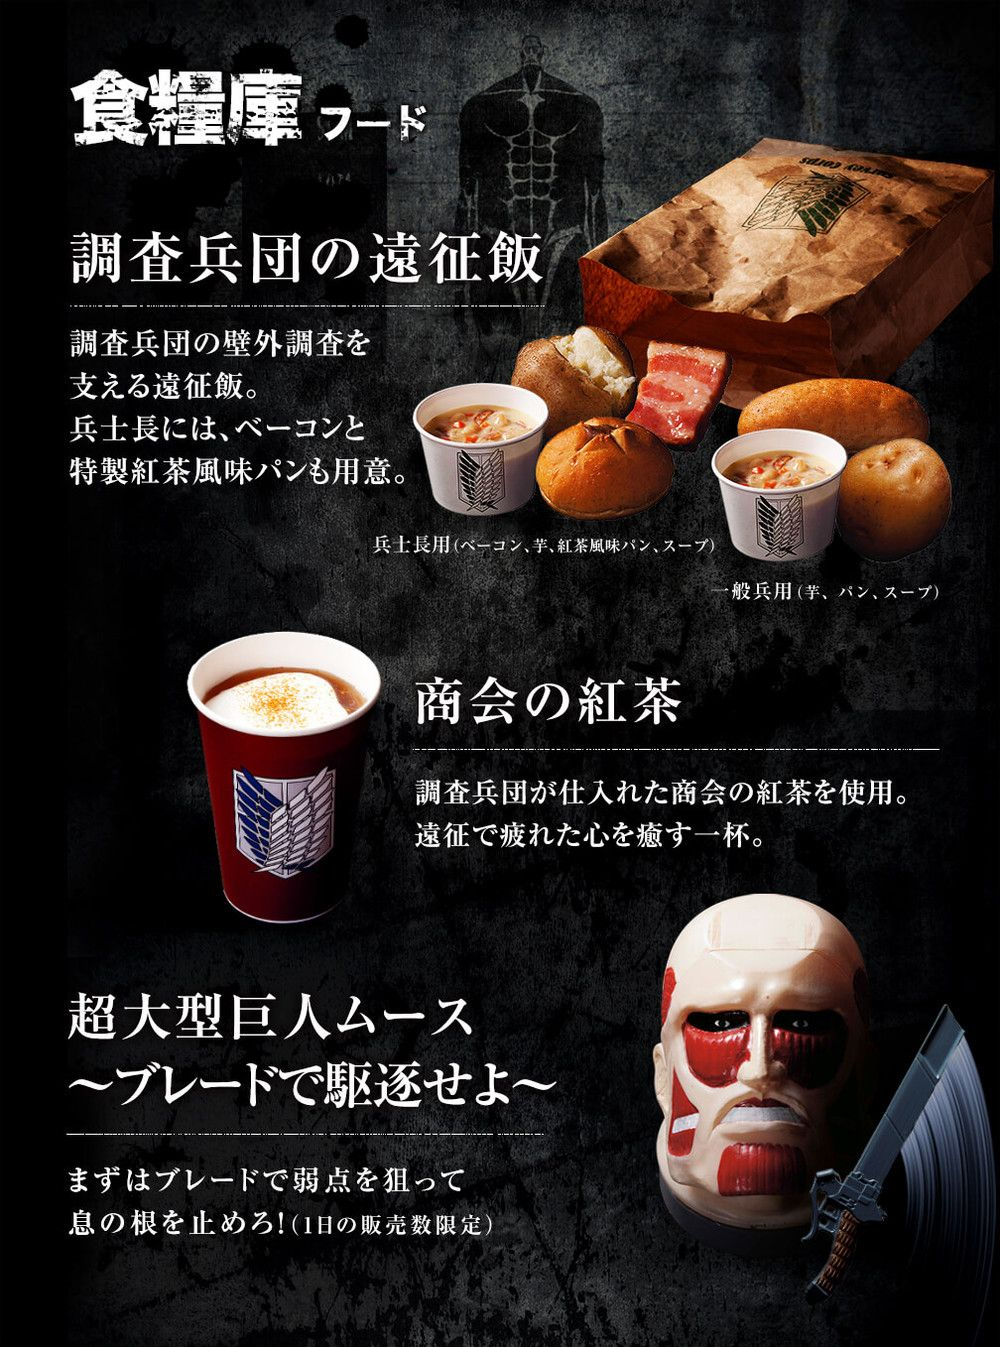 Attack on titans universal studios japan attraction opens